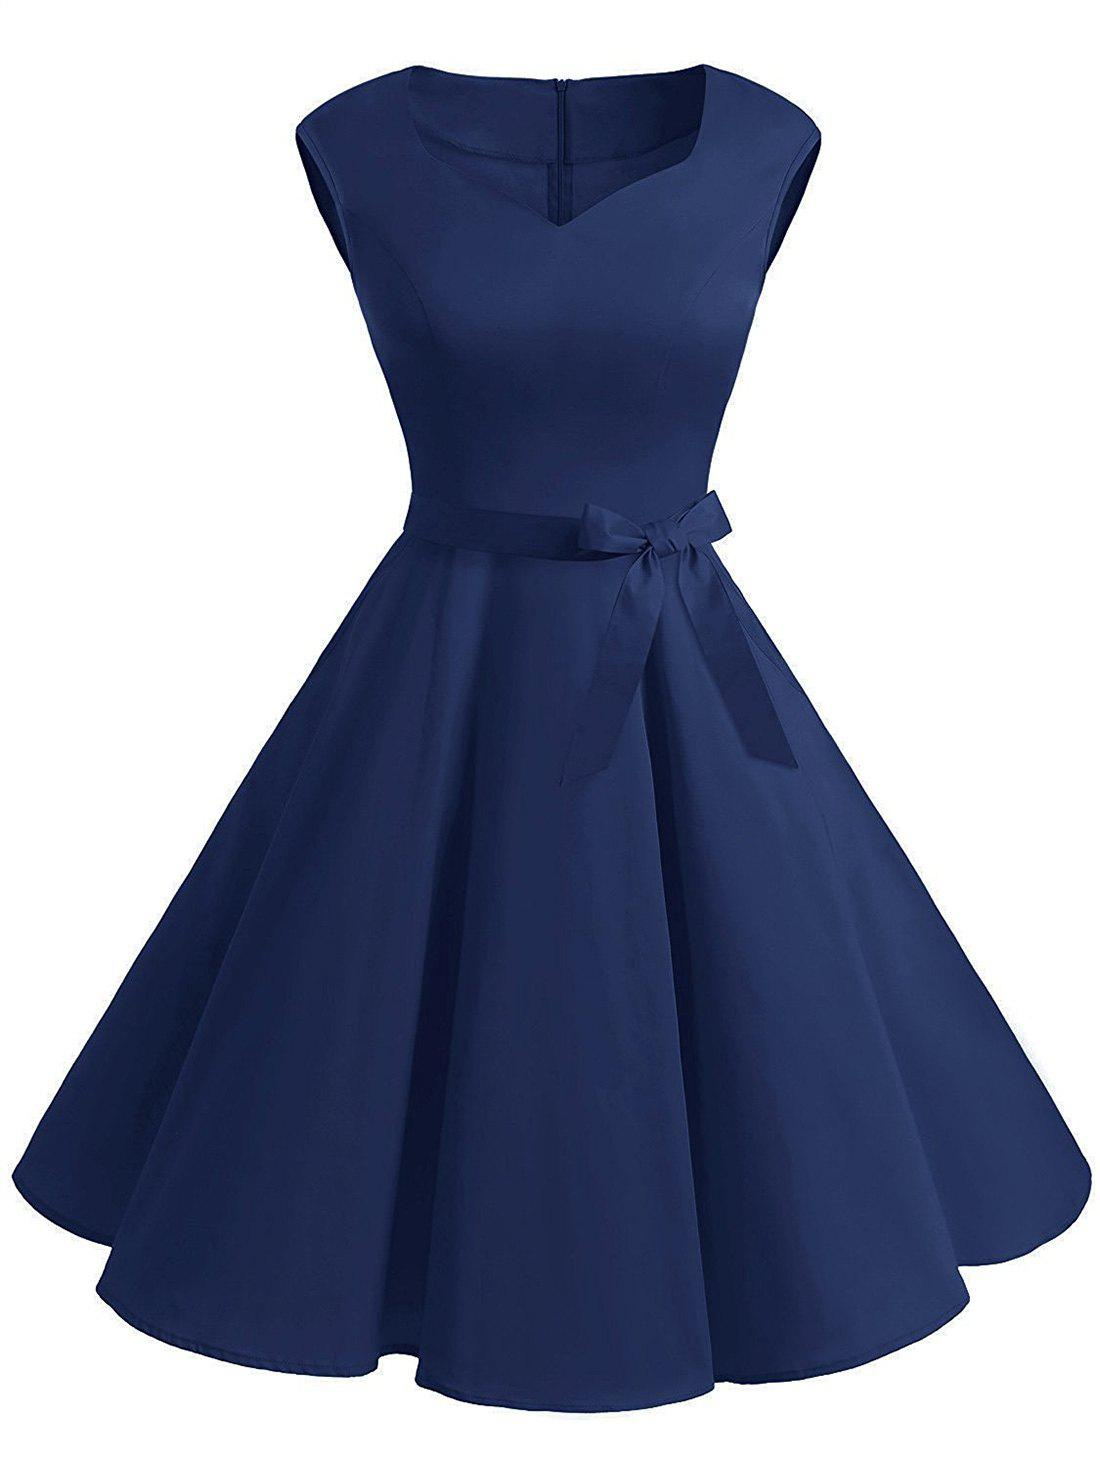 Cheap Vintage Sweetheart Neck Fit and Flare Dress